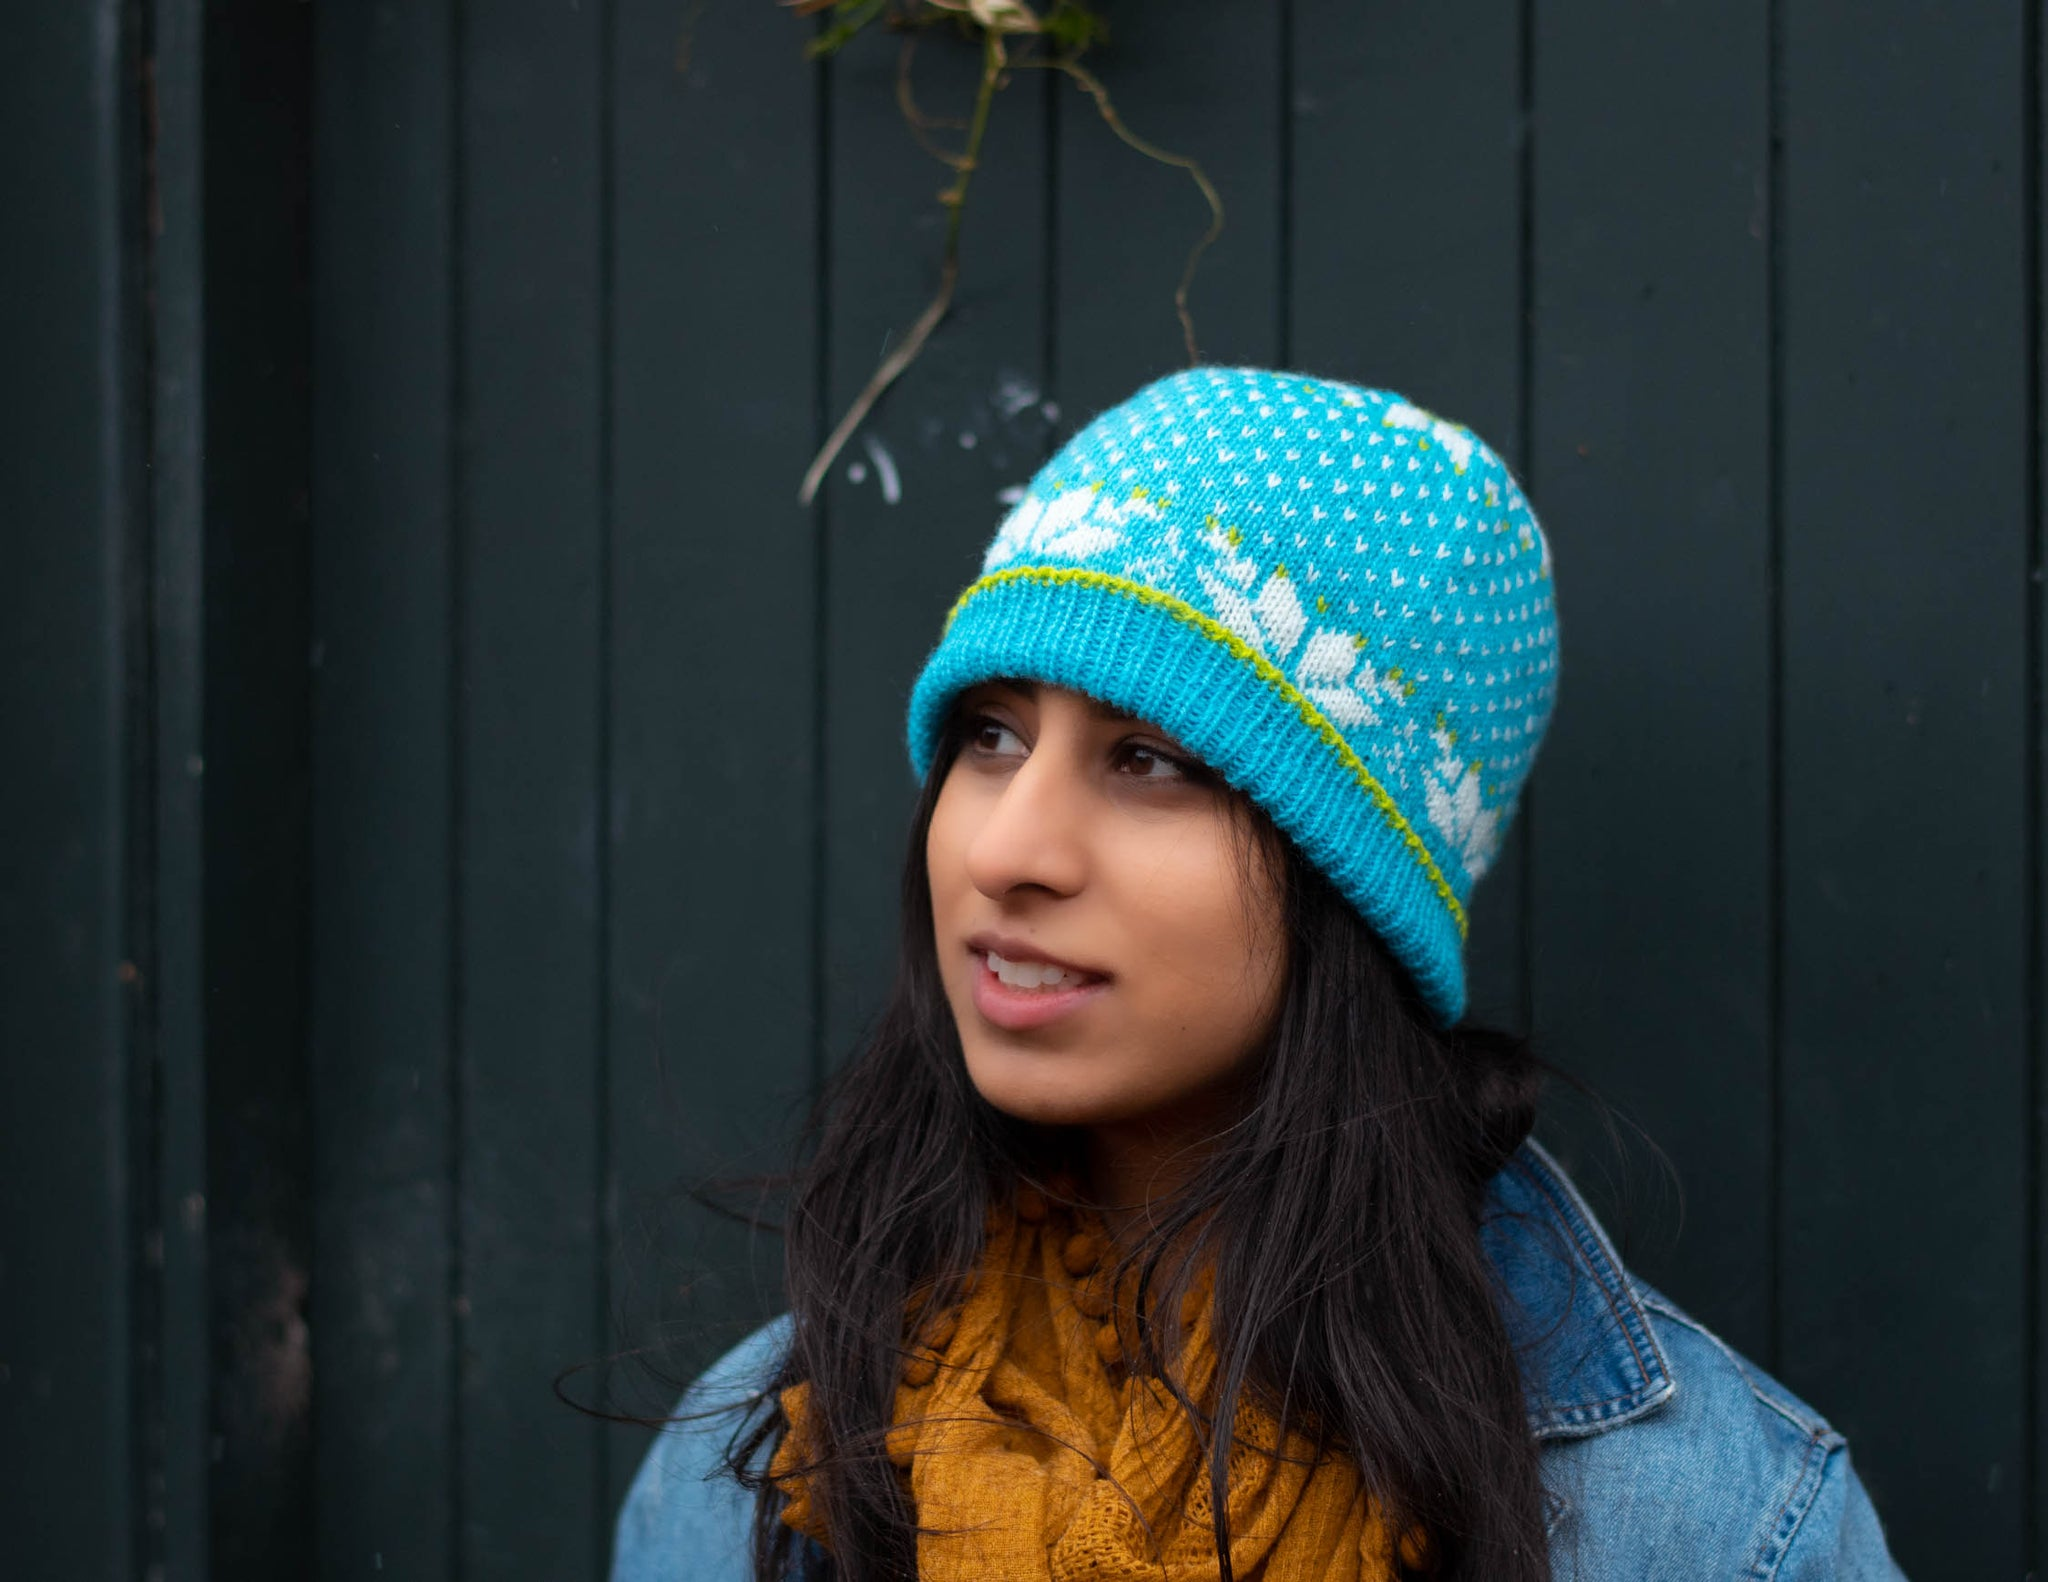 Image of a brown skinned woman with long hair, wearing a bright turquoise colourwork hat.